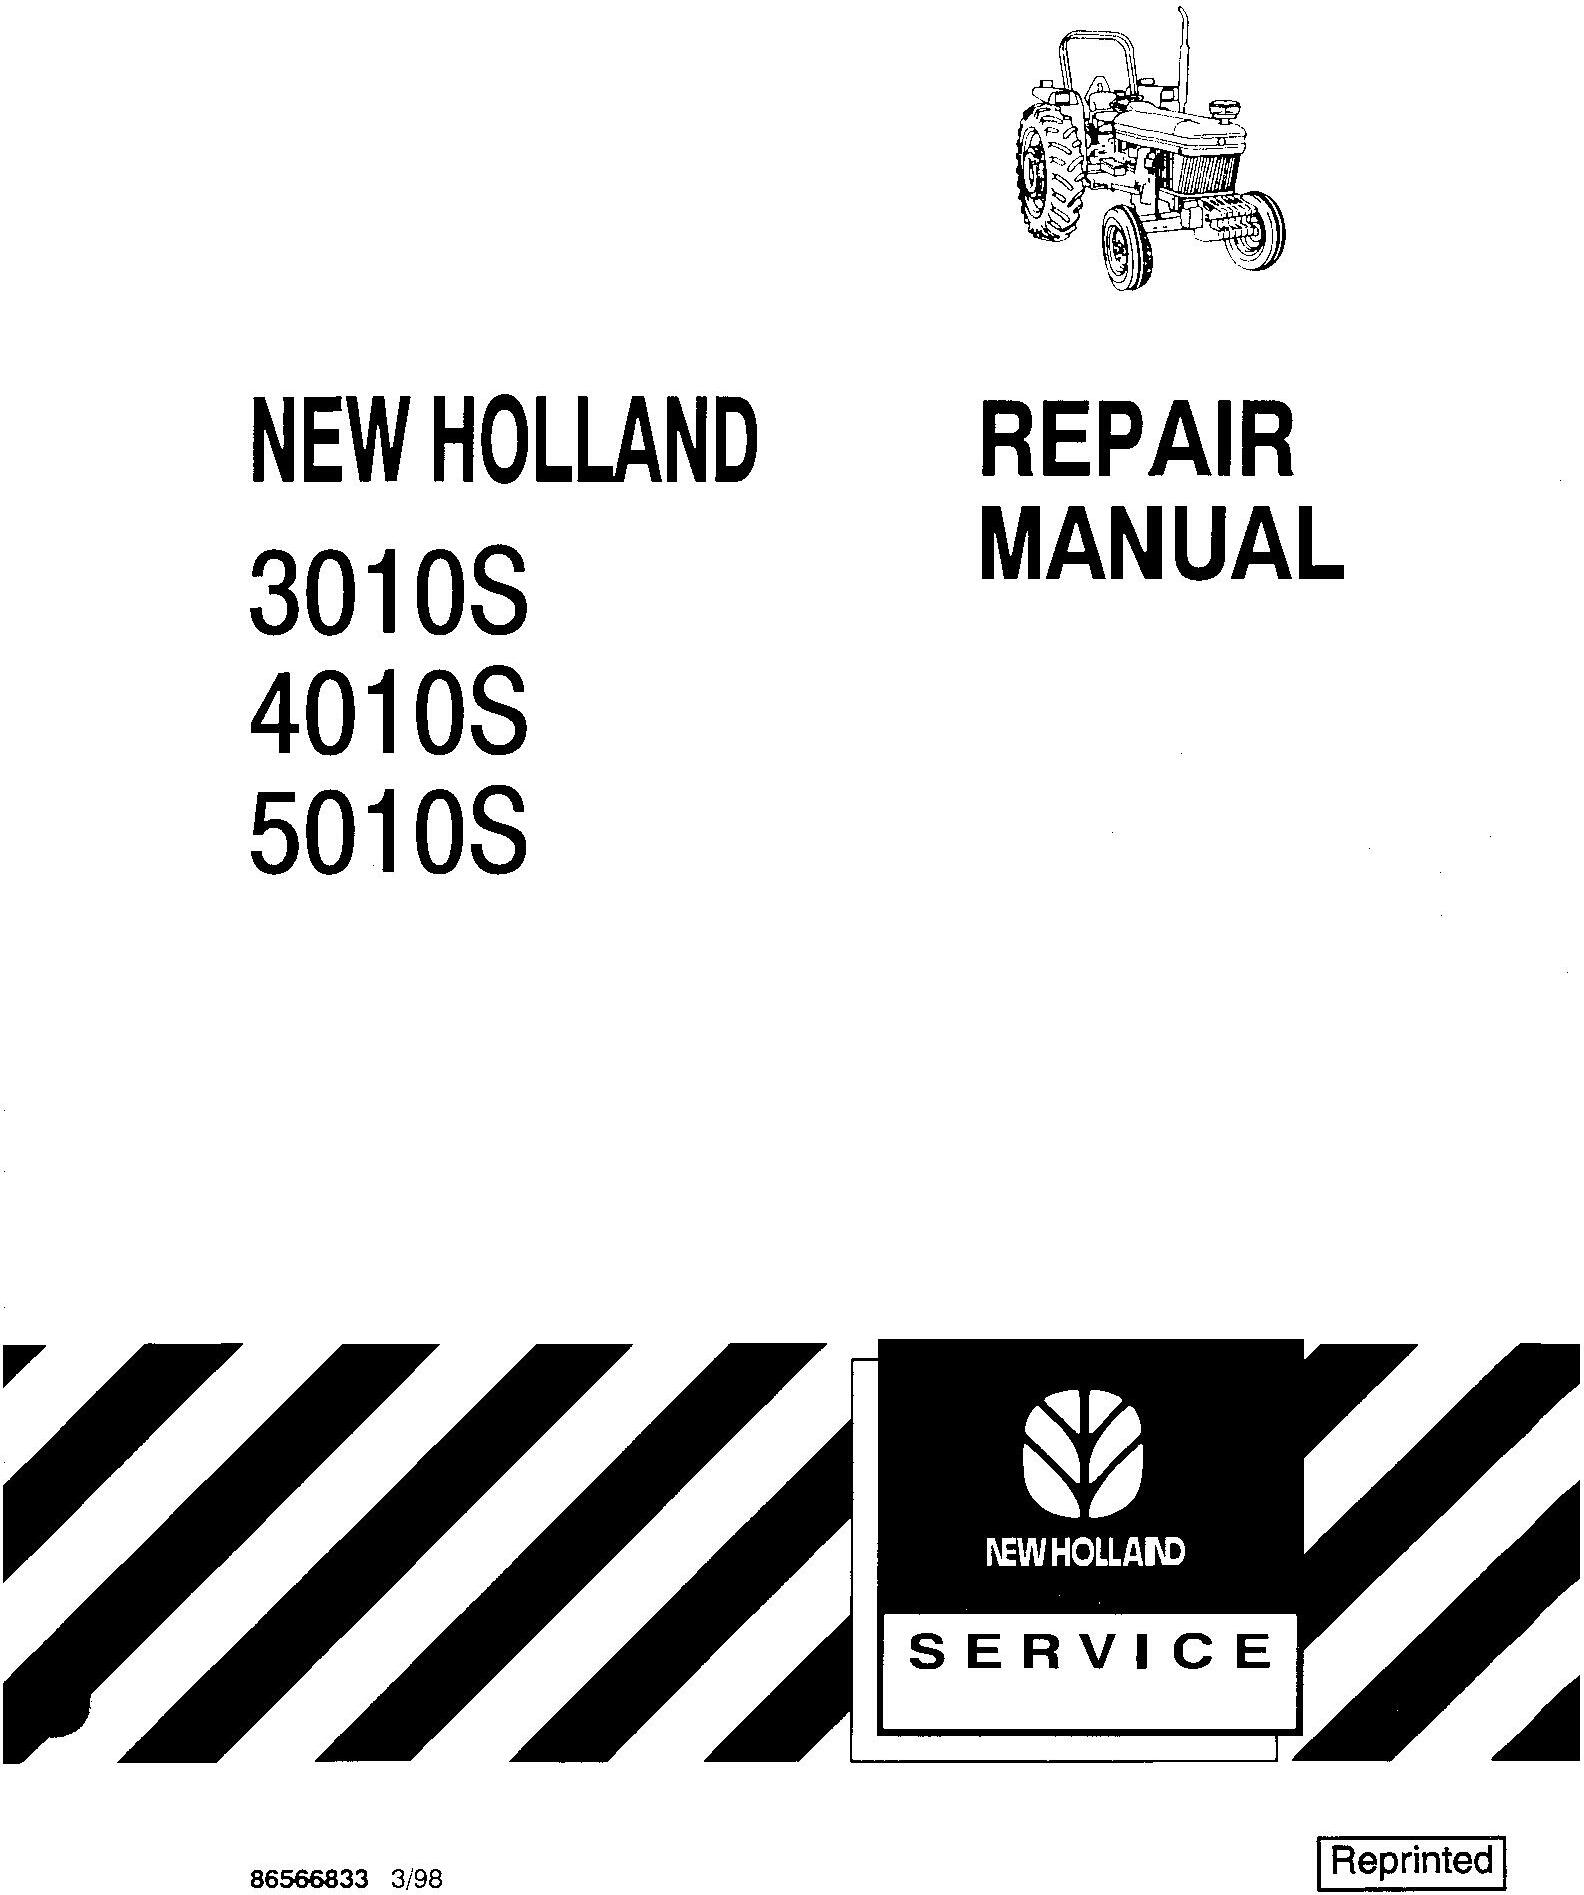 New Holland 3010S, 4010S, 5010S Tractor Service Manual - 19585